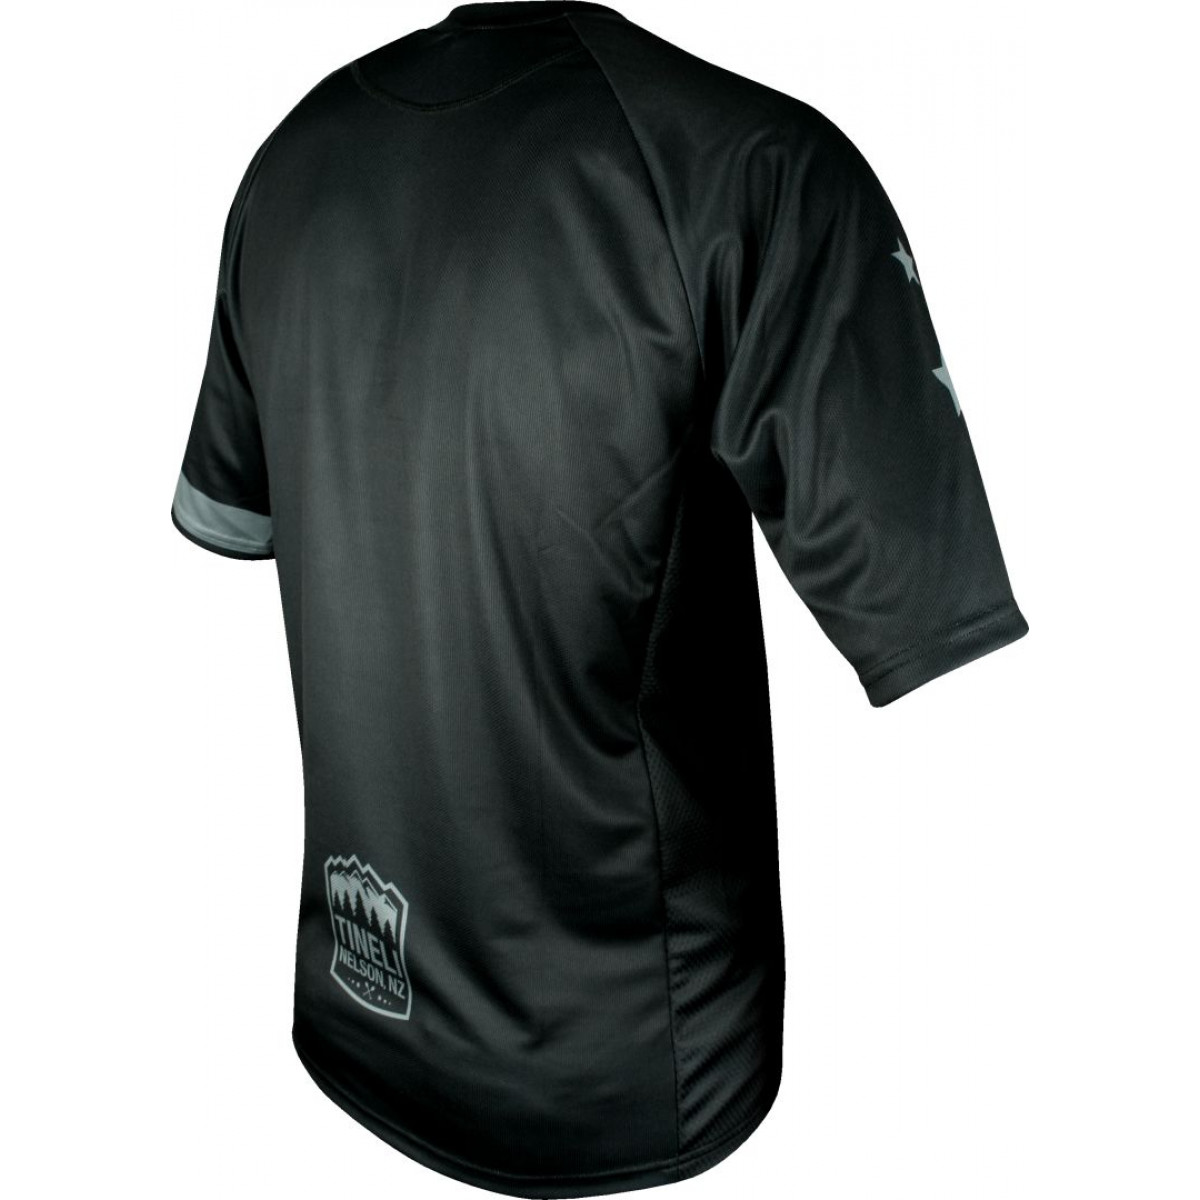 287 heritage trail jersey back Tineli Heritage Trail Jersey